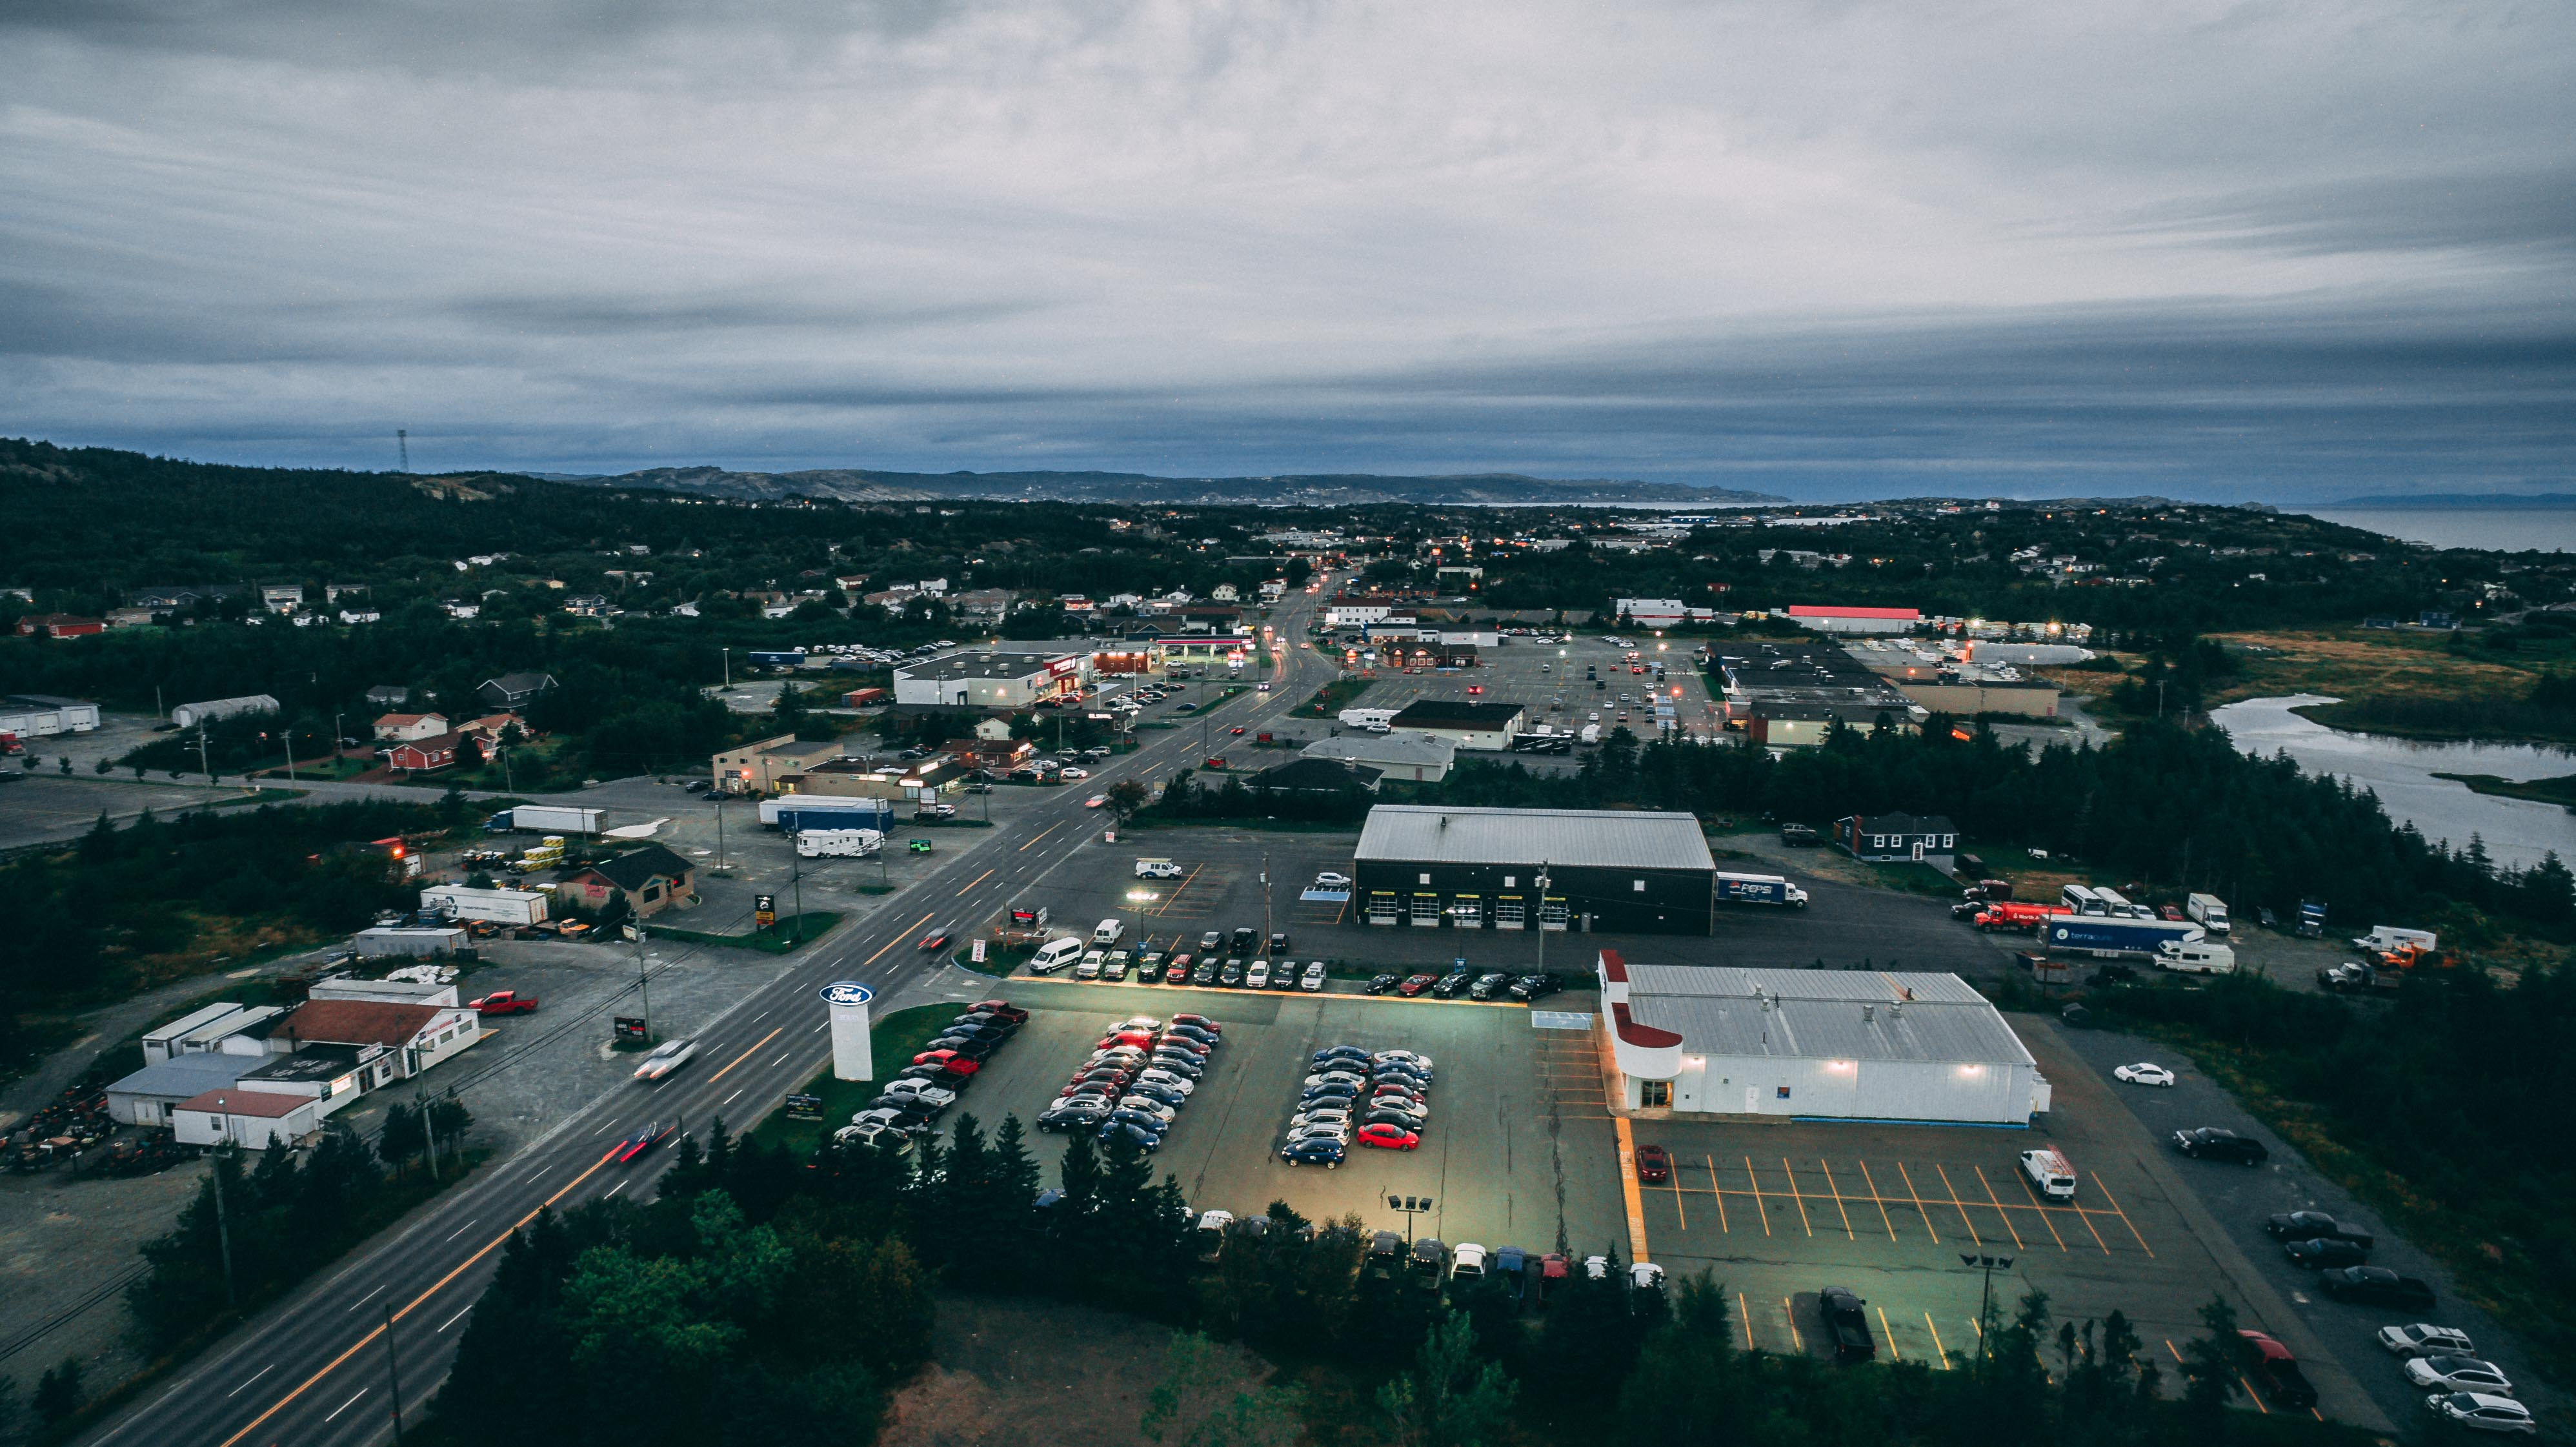 The town of Bay Roberts will be the home of the Mad Rock drive-in movie theatre. Tyler Mugford/Kicker